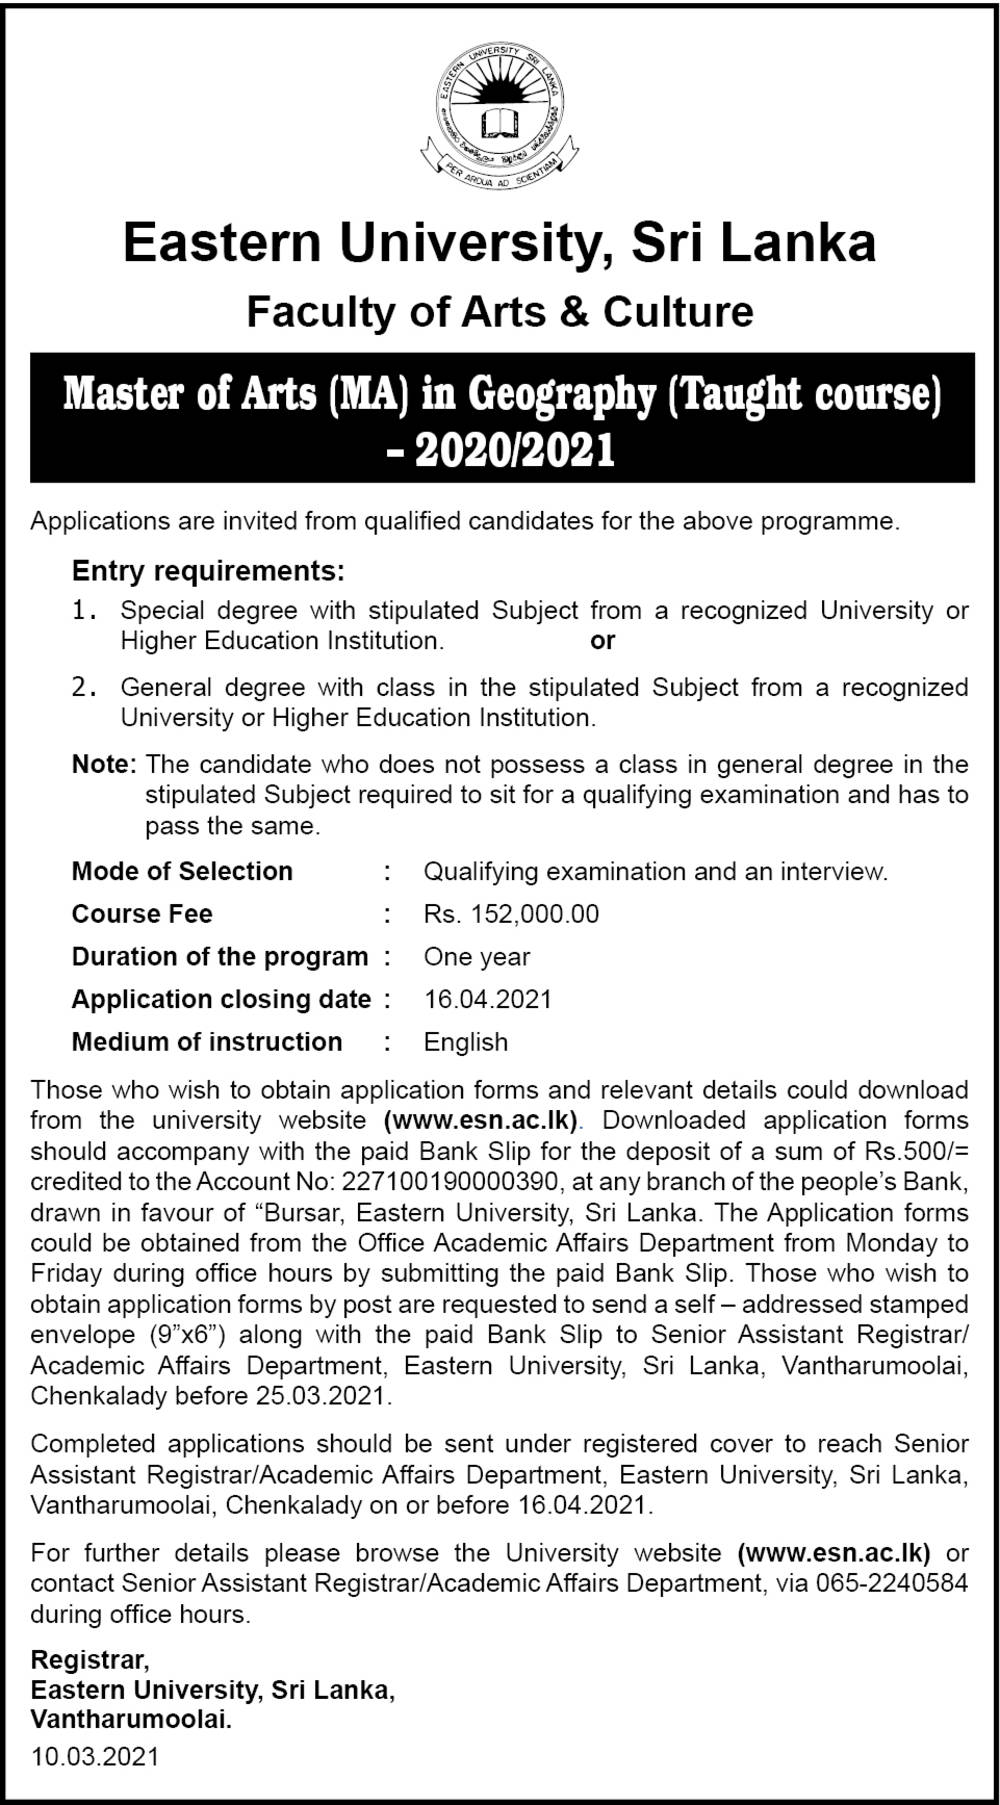 Master of Arts (MA) in Geography (Taught Course) (2020/2021) - Faculty of Arts & Culture - Eastern University, Sri Lanka